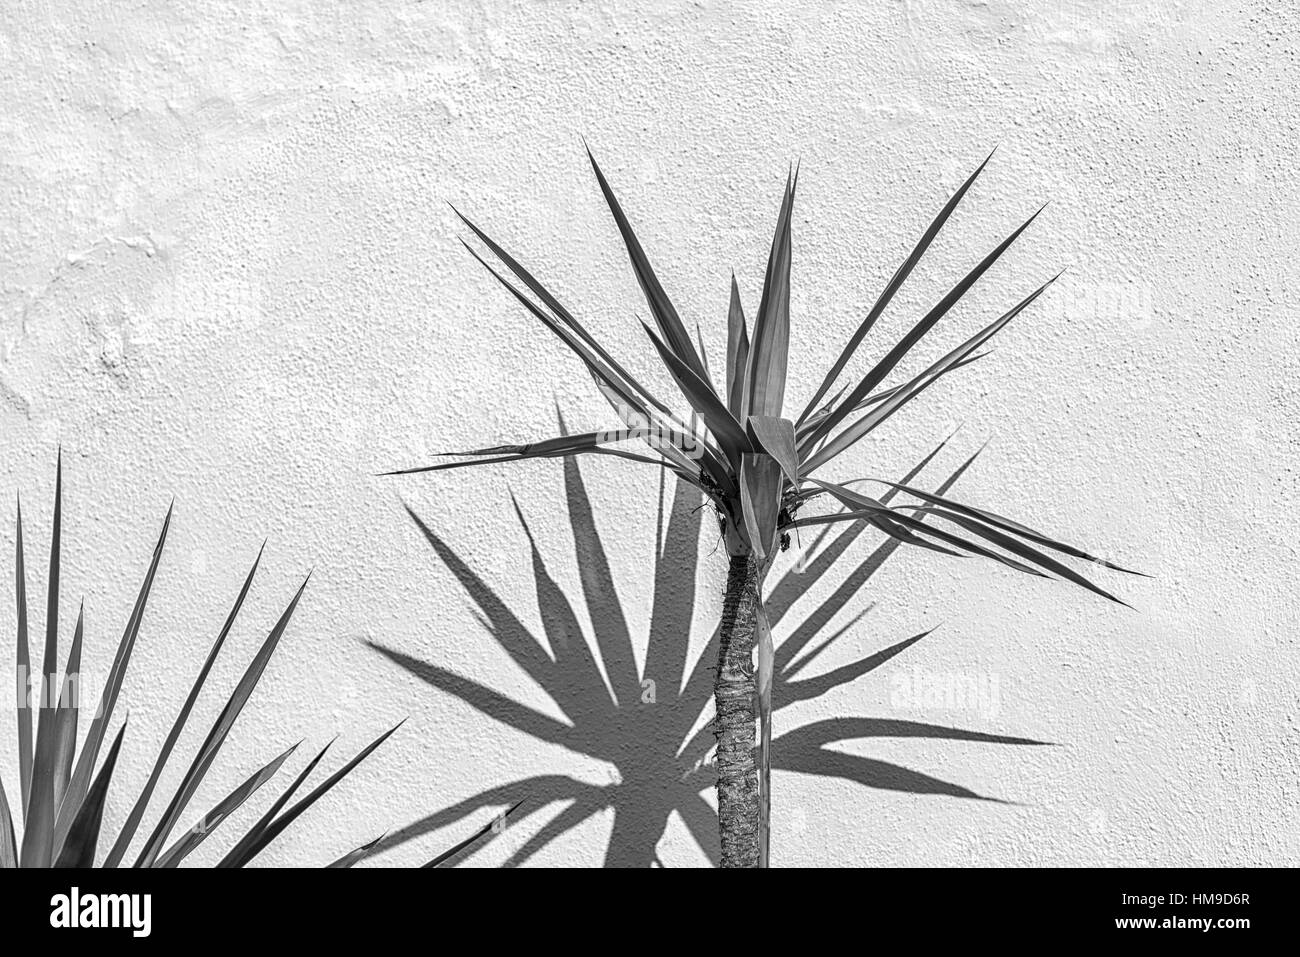 Close up of palm trees casting shadows against a concrete wall. - Stock Image